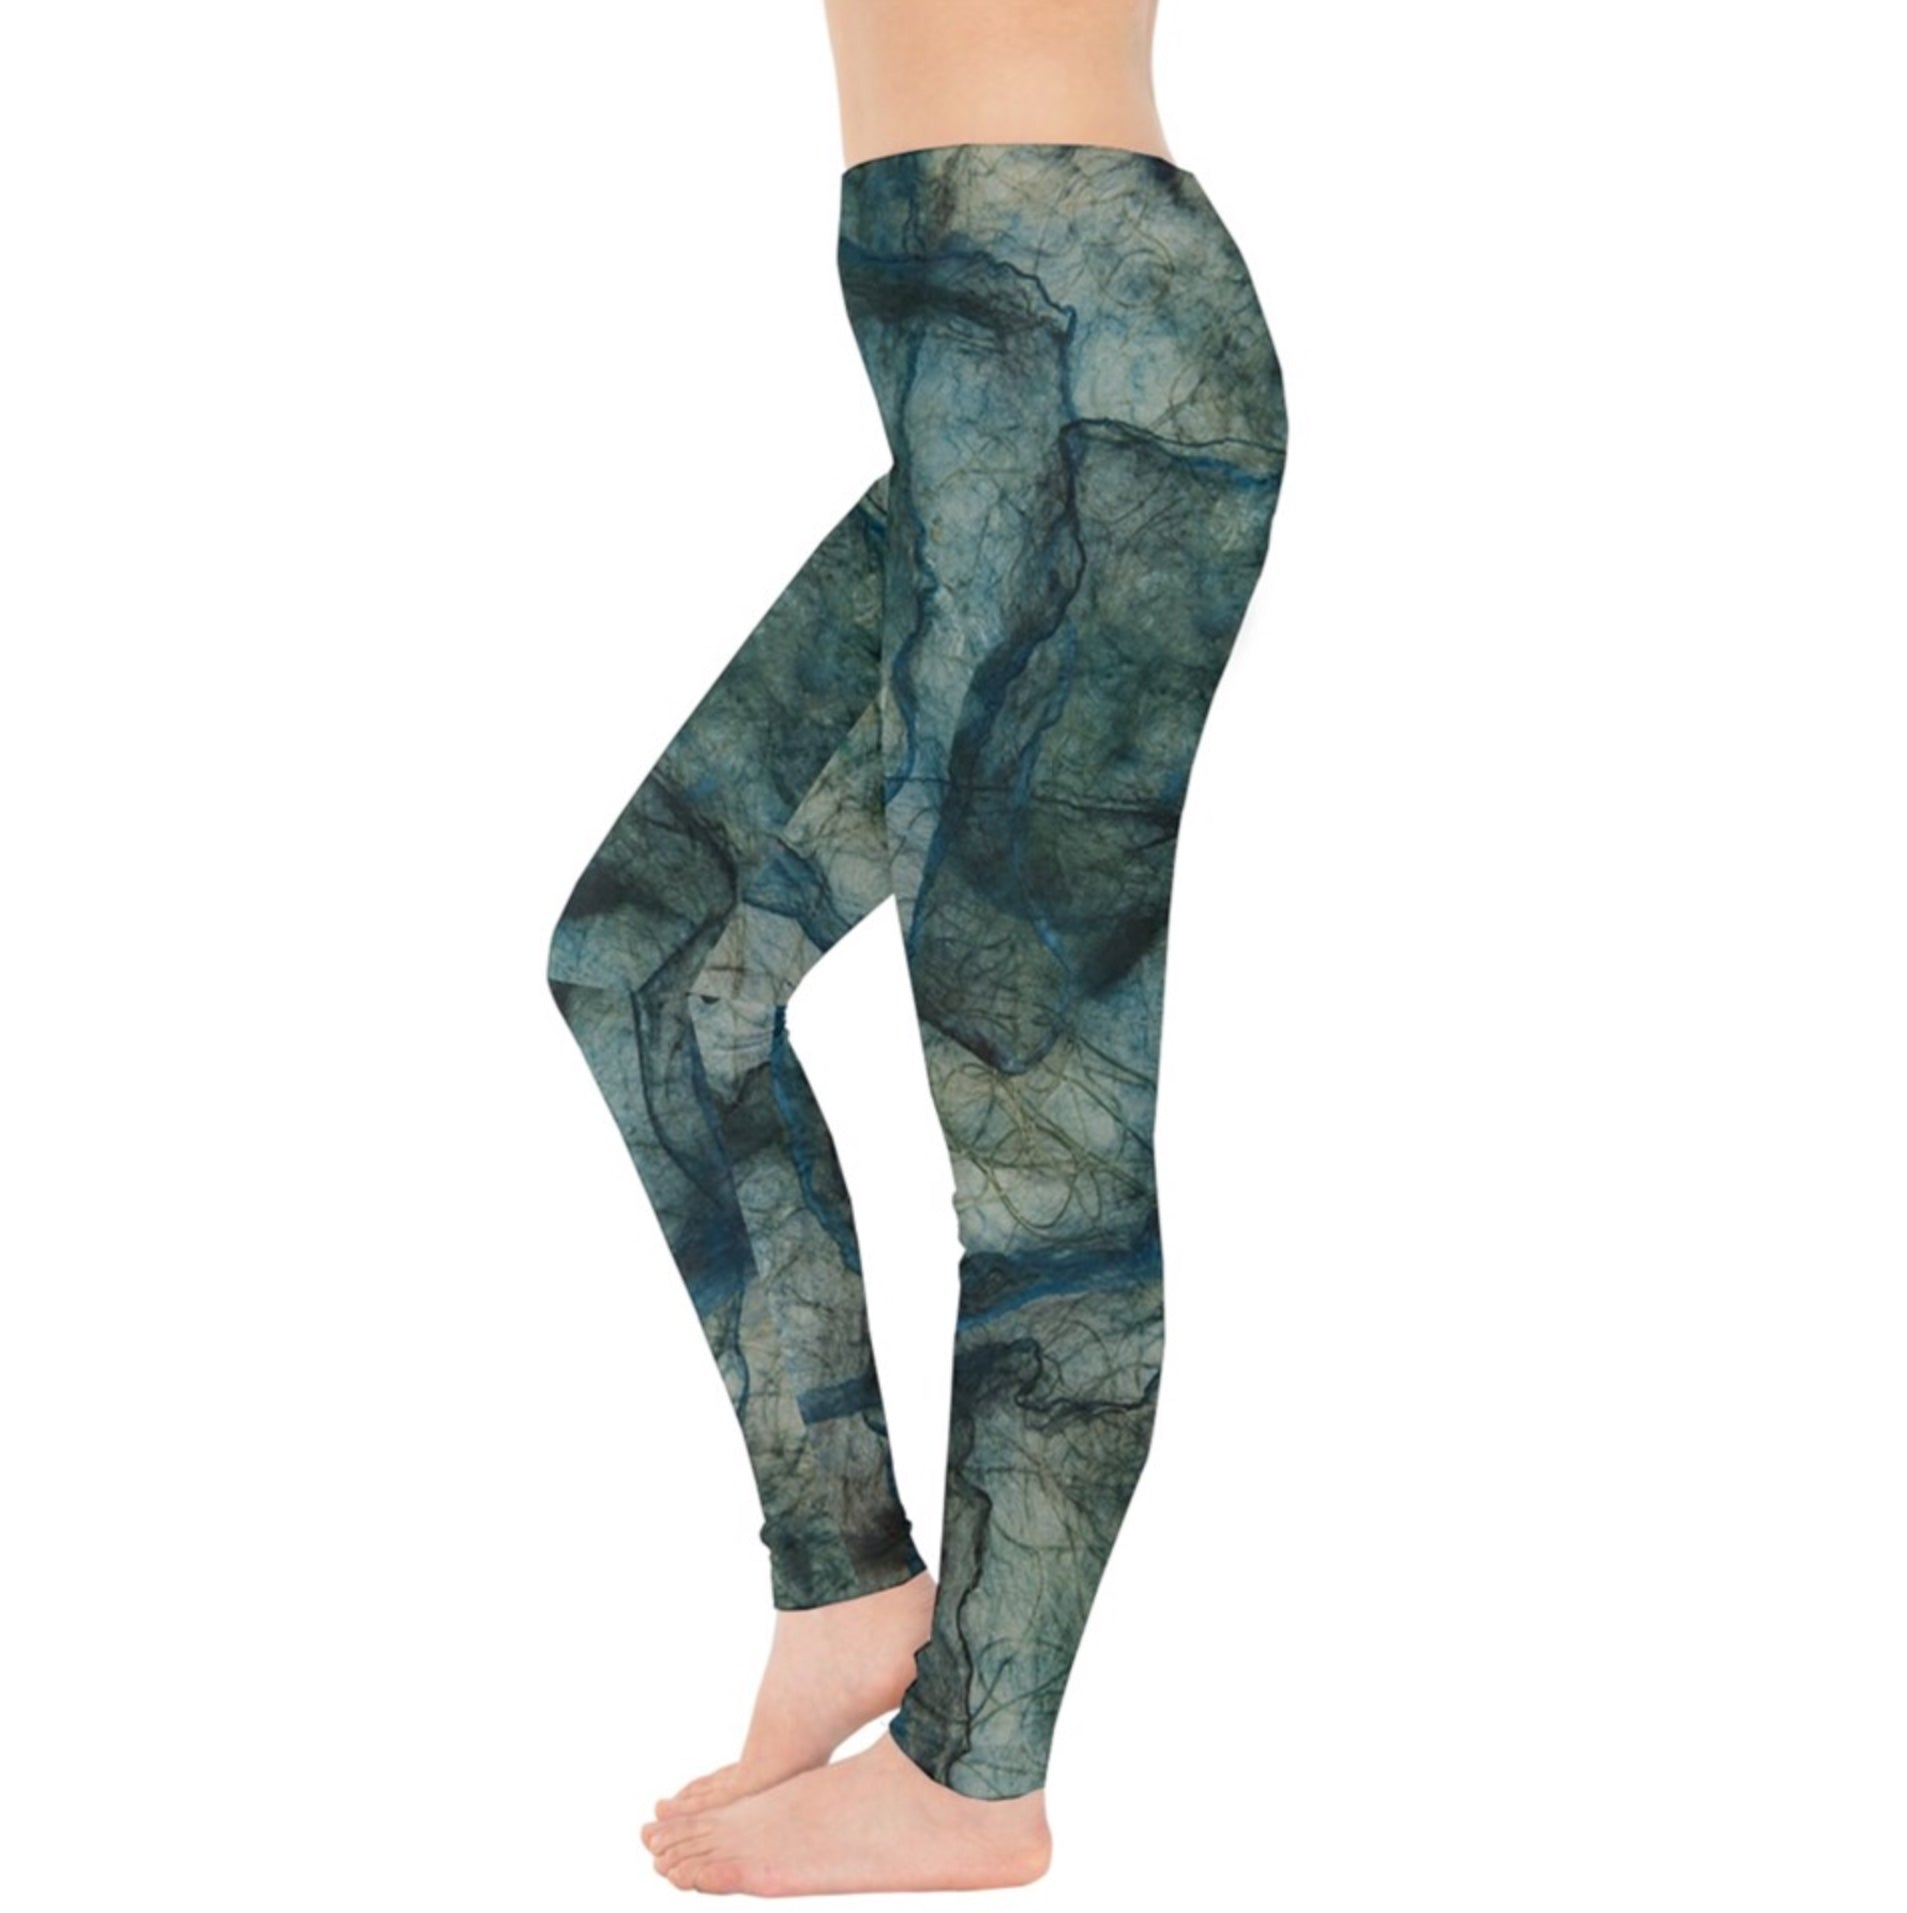 Blue Threads Leggings